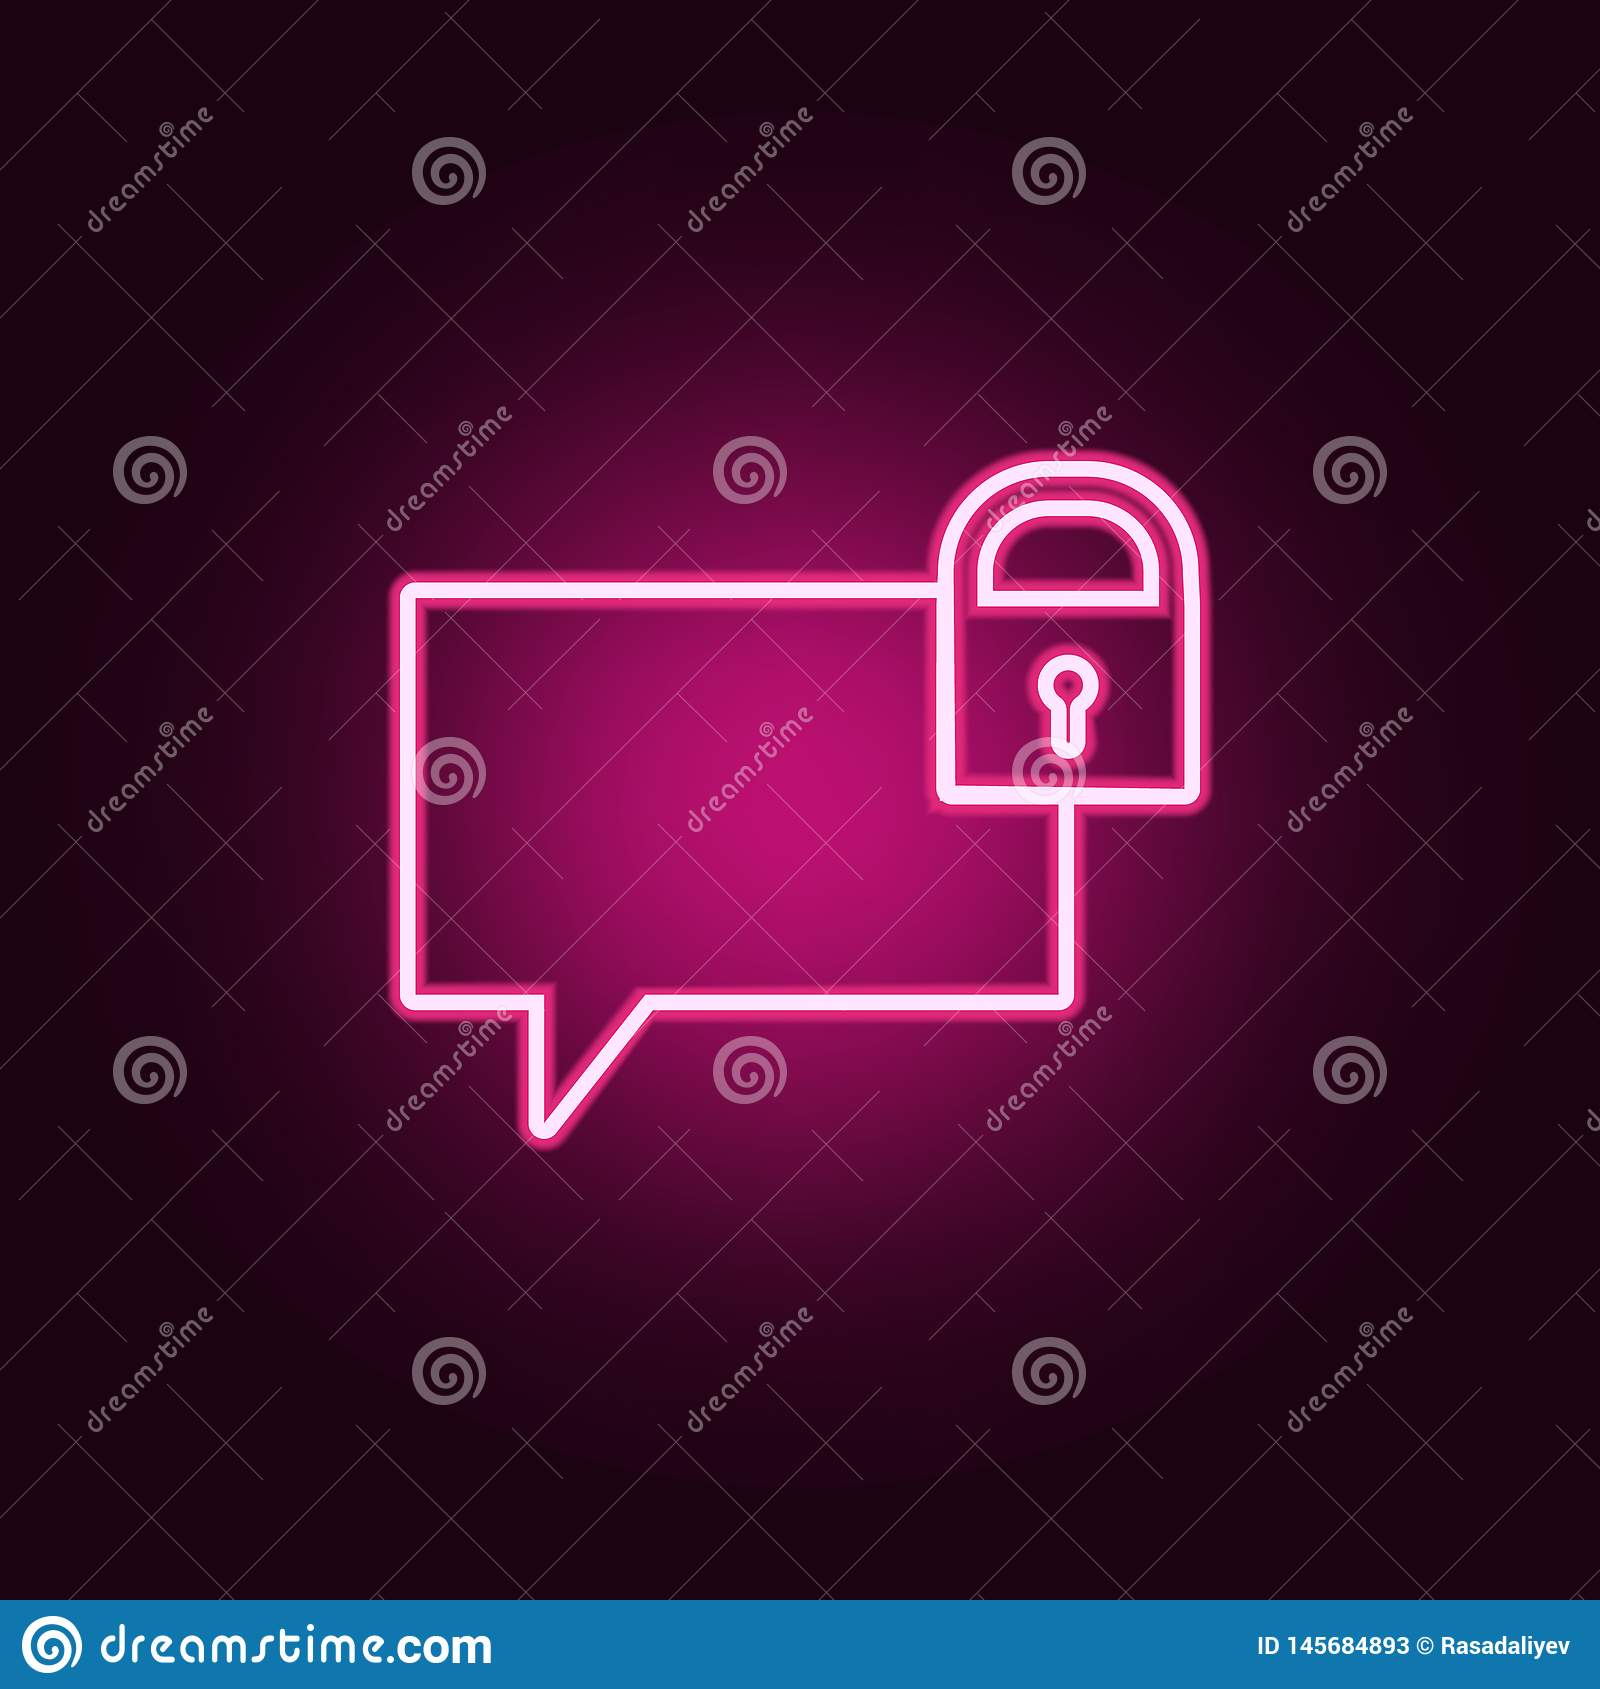 bubbles of communication with the lock icon. Elements of Web in neon style icons. Simple icon for websites, web design, mobile app